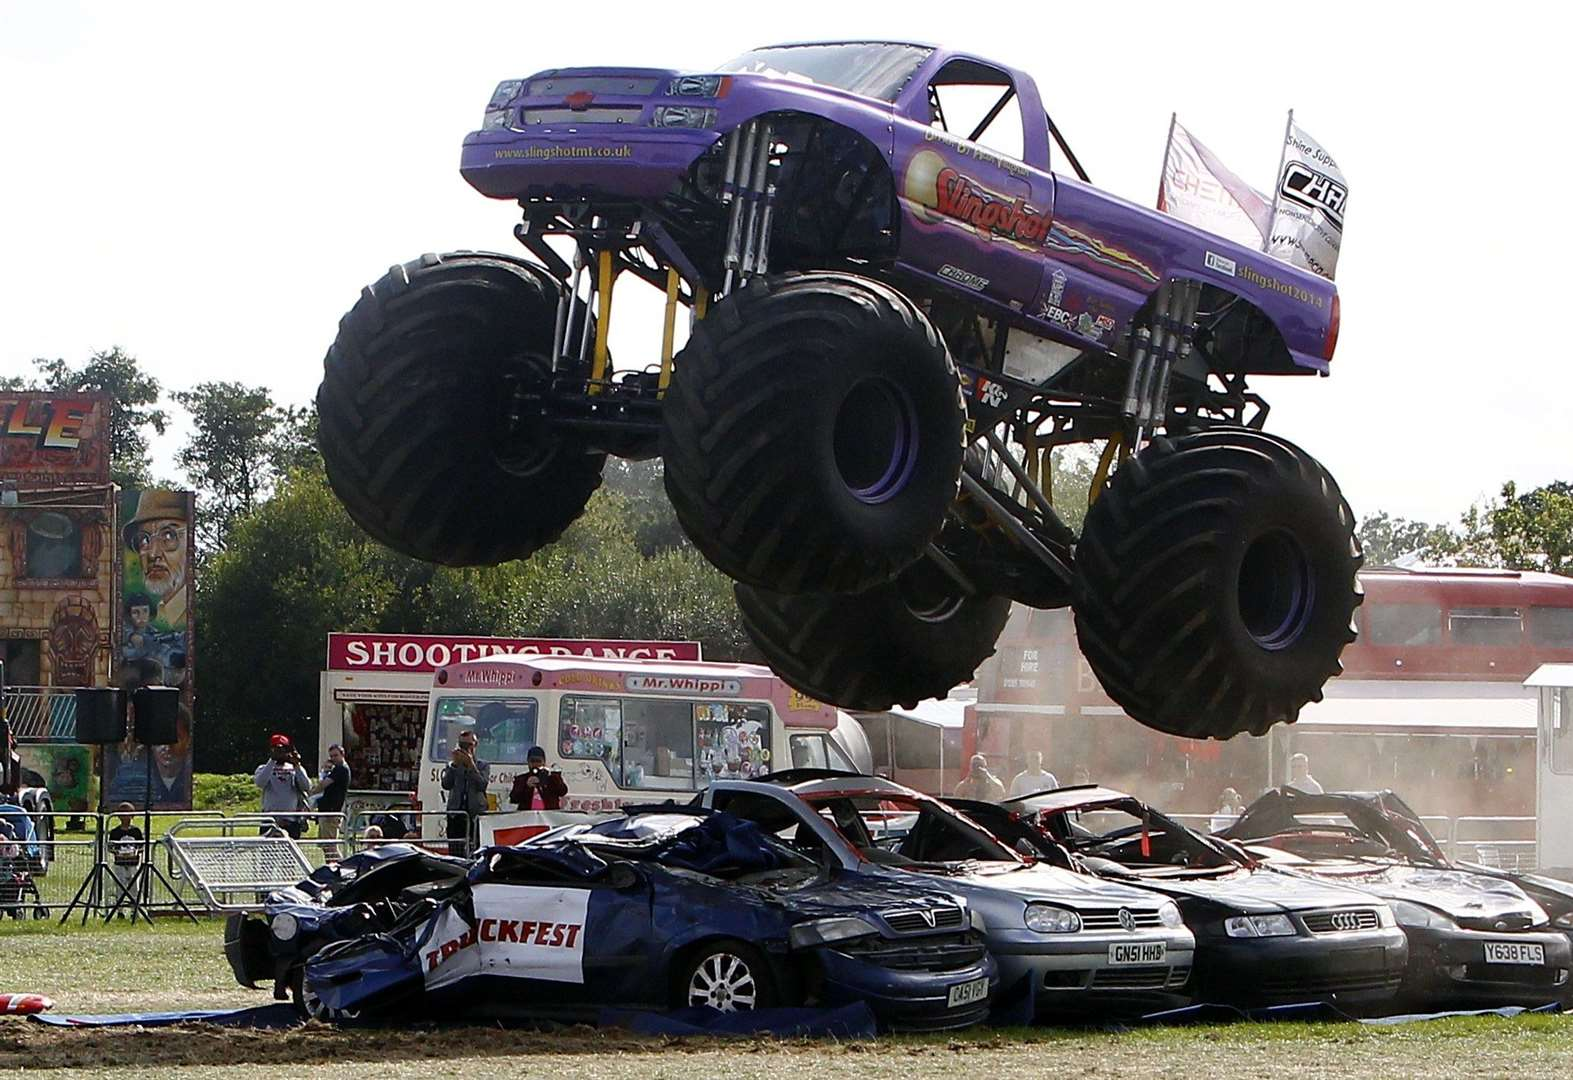 Monster fun with Truckfest